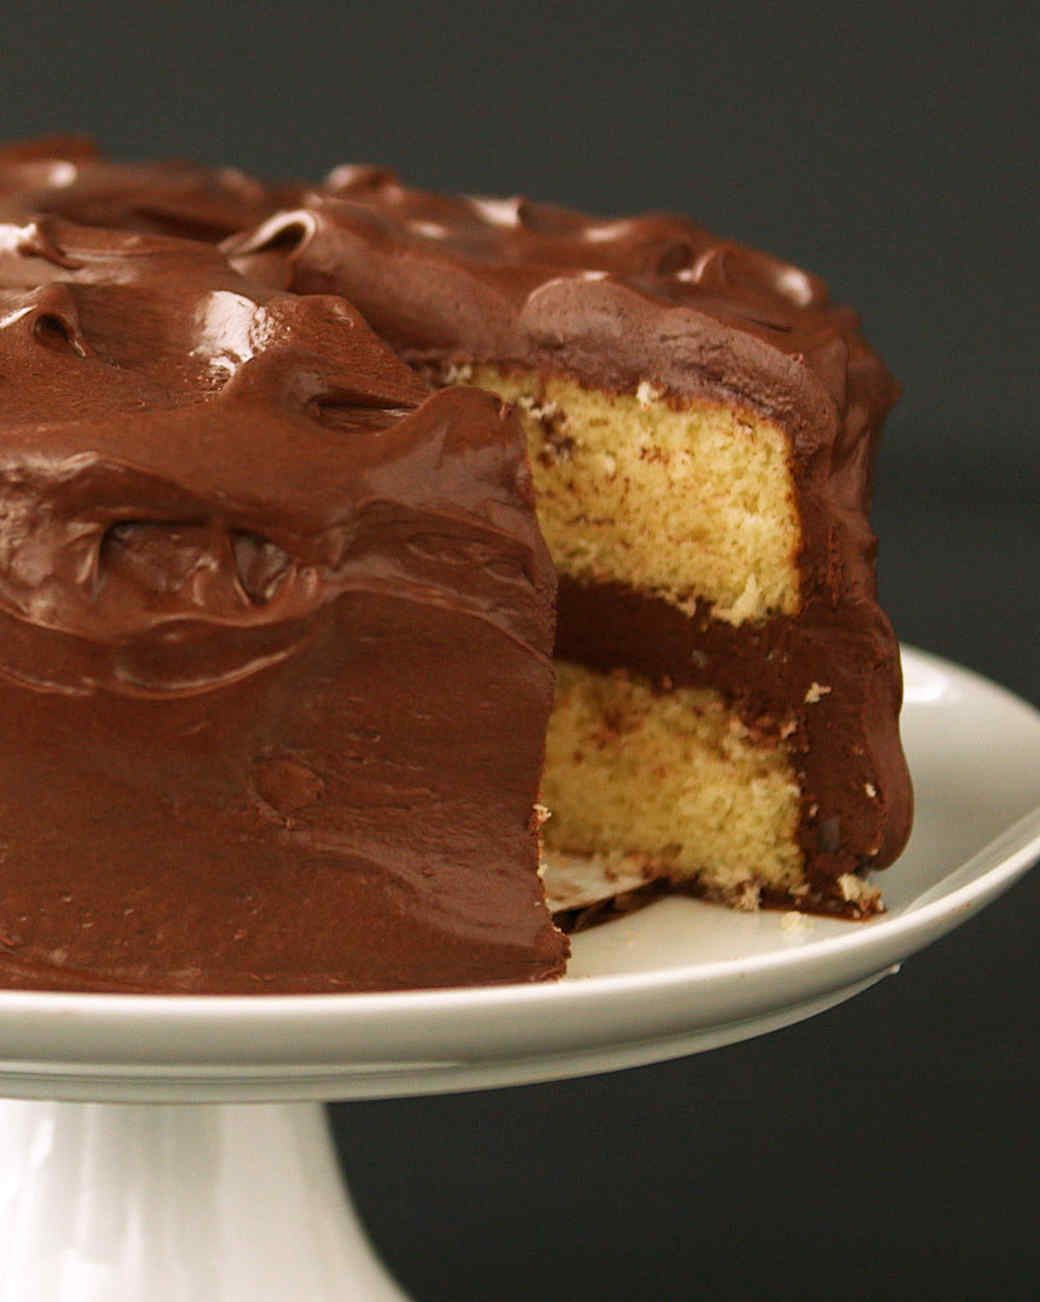 Decorate Each Layer With Our Chocolate Frosting For A Spectacular Birthday Or Special Occasion Dessert